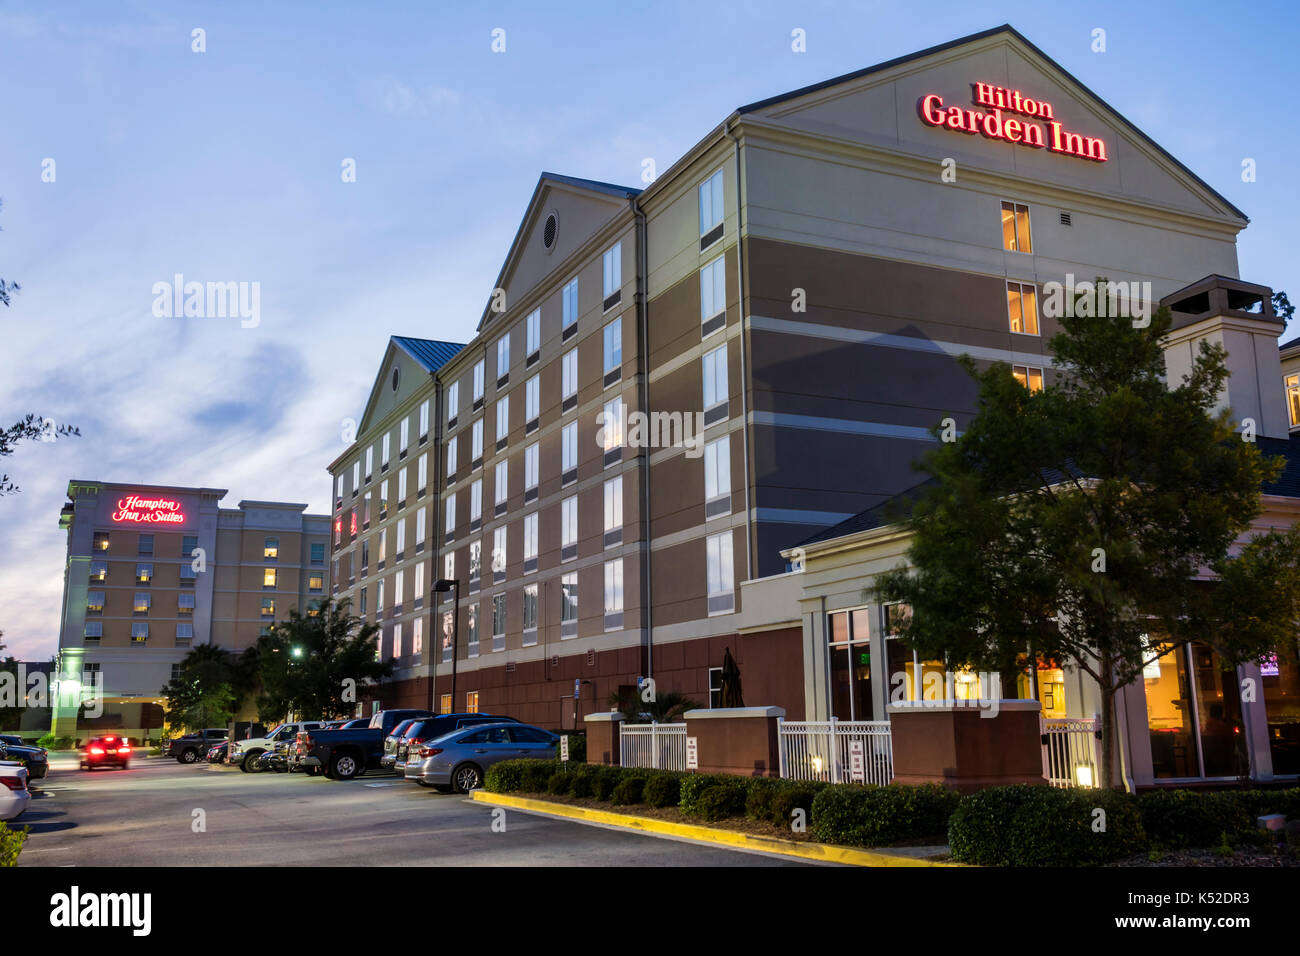 Hilton Garden Inn Stock Photos Hilton Garden Inn Stock Images Alamy